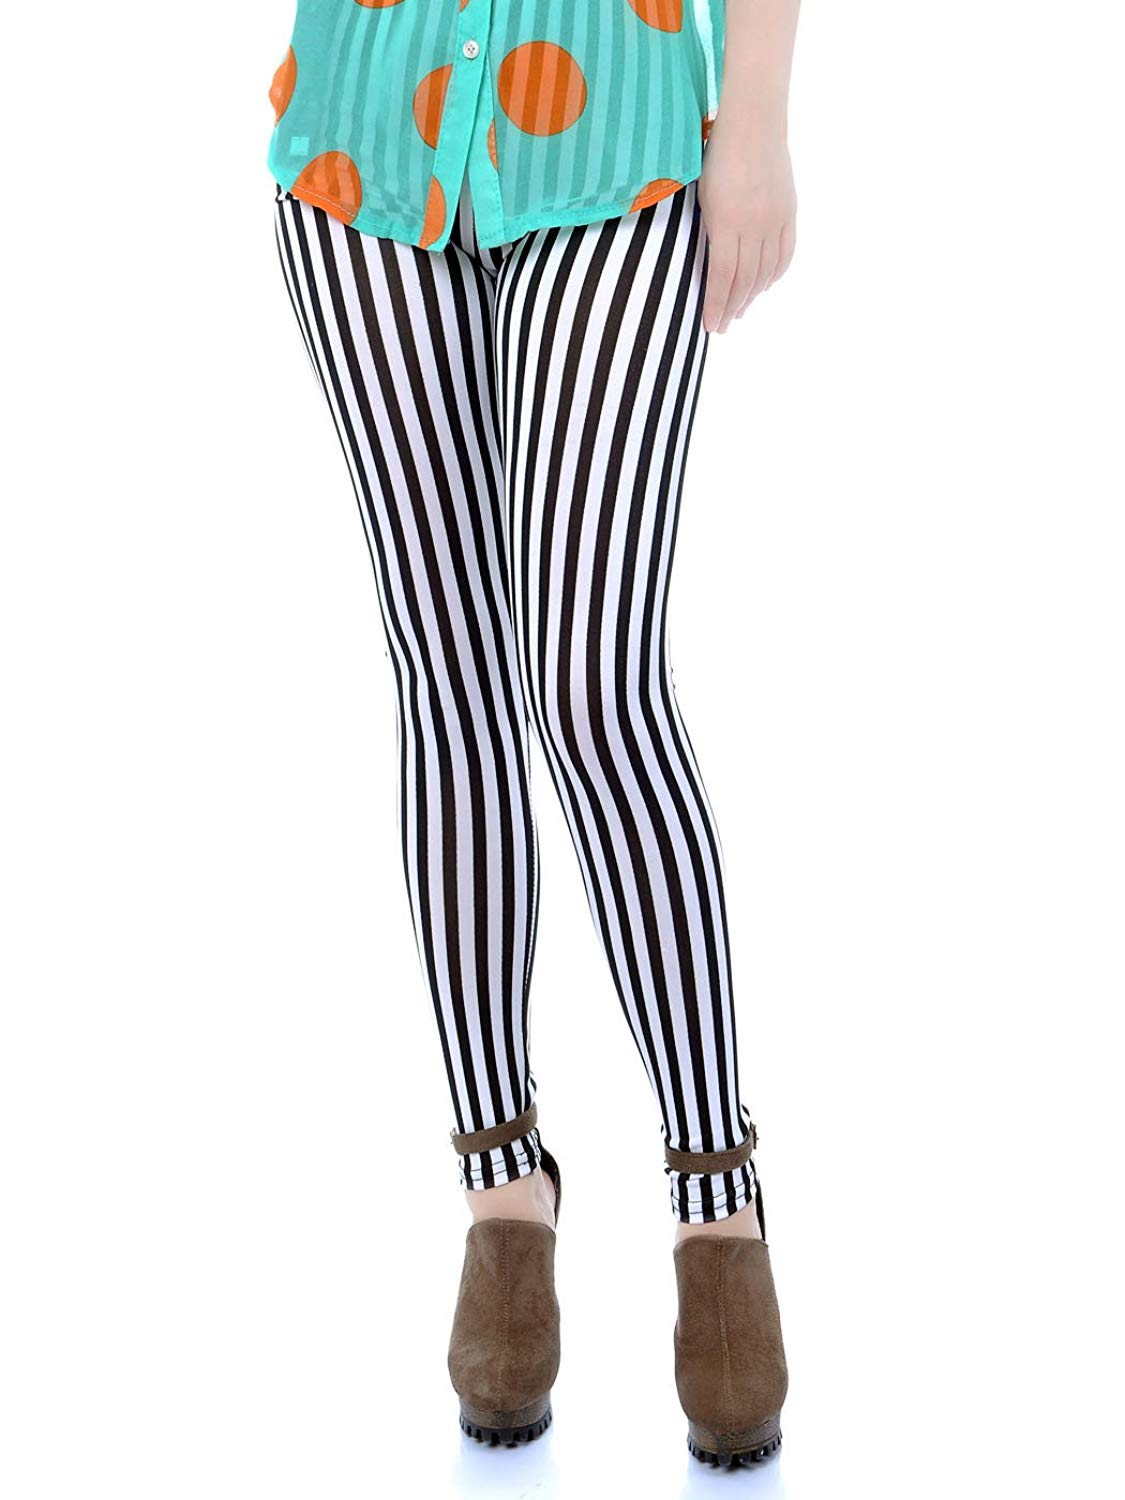 2ec0112479e96 Get Quotations · Anna - Kaci Womens Black White Punk Vertical Stripe Tights  Leggings, Black / White,